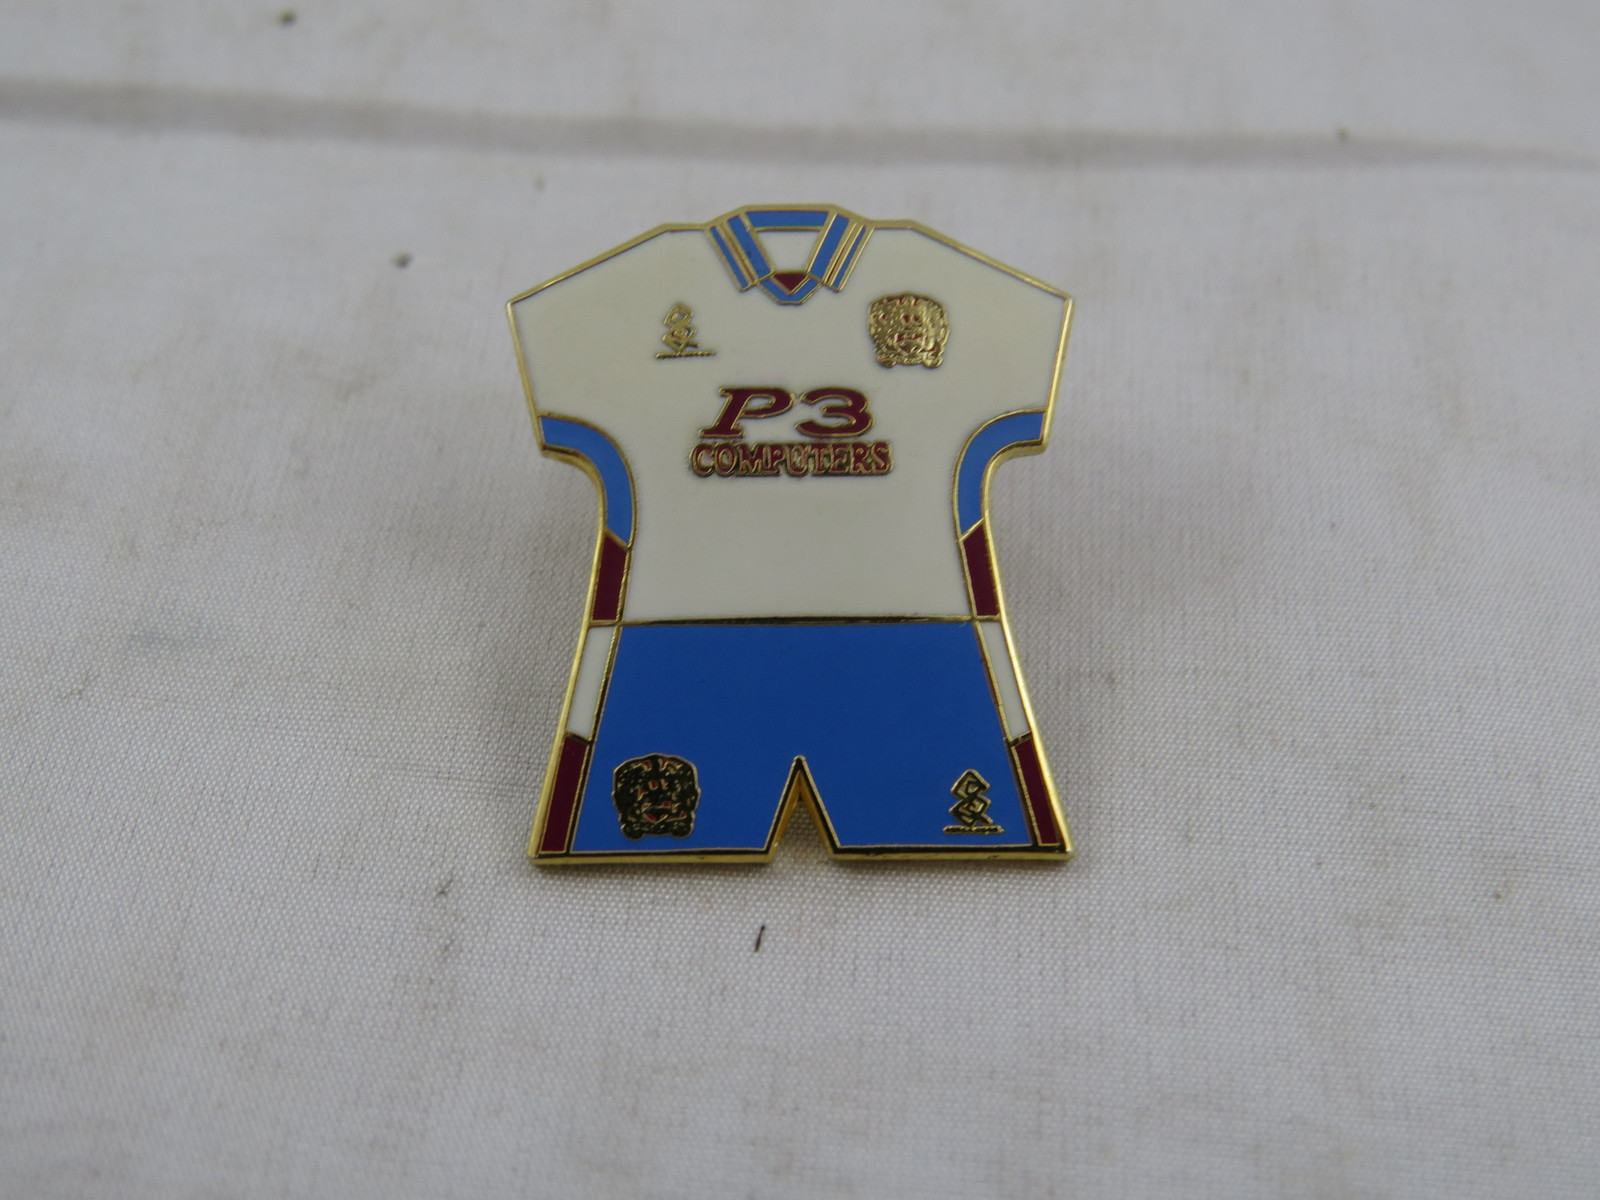 Burnely Away Kit Pin - 1999 Uniform - Stamped Pin